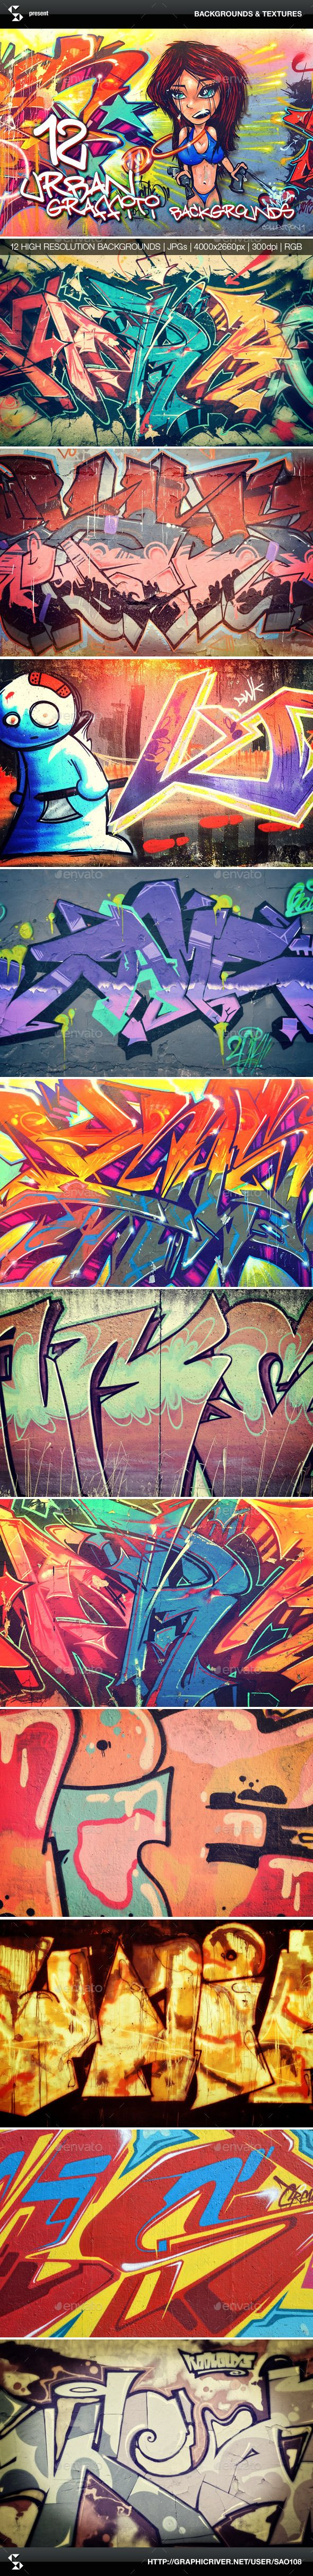 Urban graffiti backgrounds collection 1